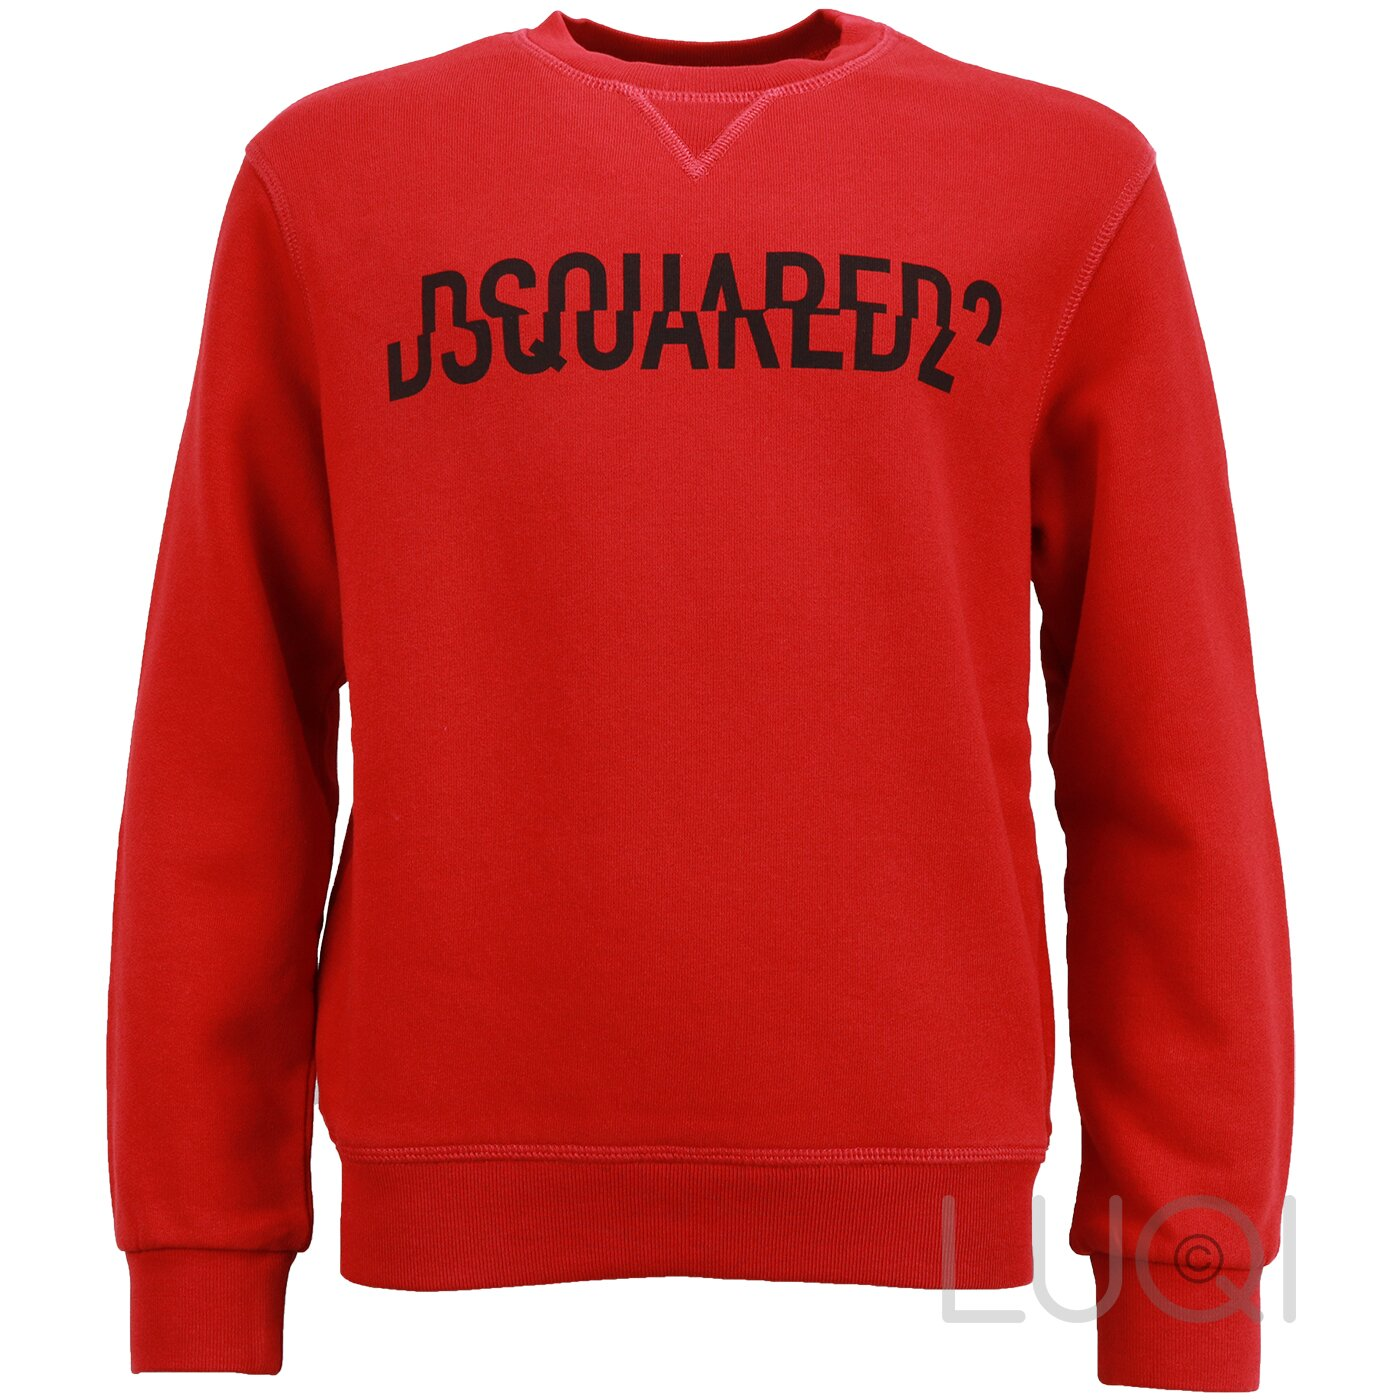 Dsquared2 Sweater rood met logo relax fit